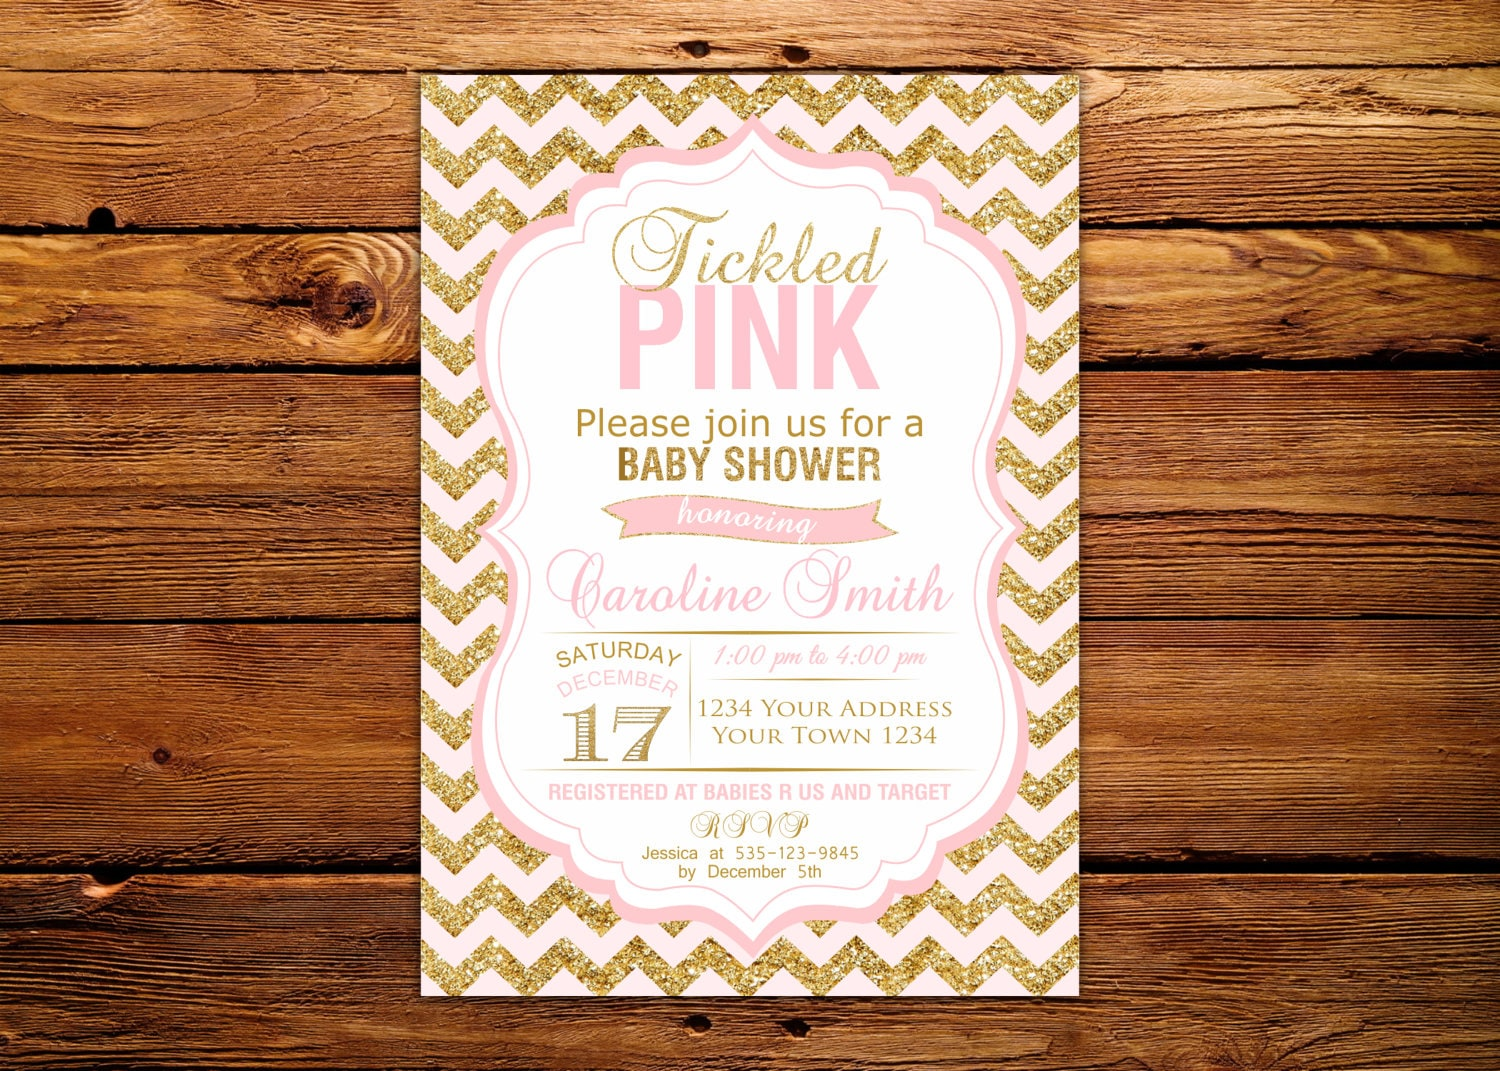 Baby Shower Invitations. Tickled Pink Baby Shower. Baby Girl.